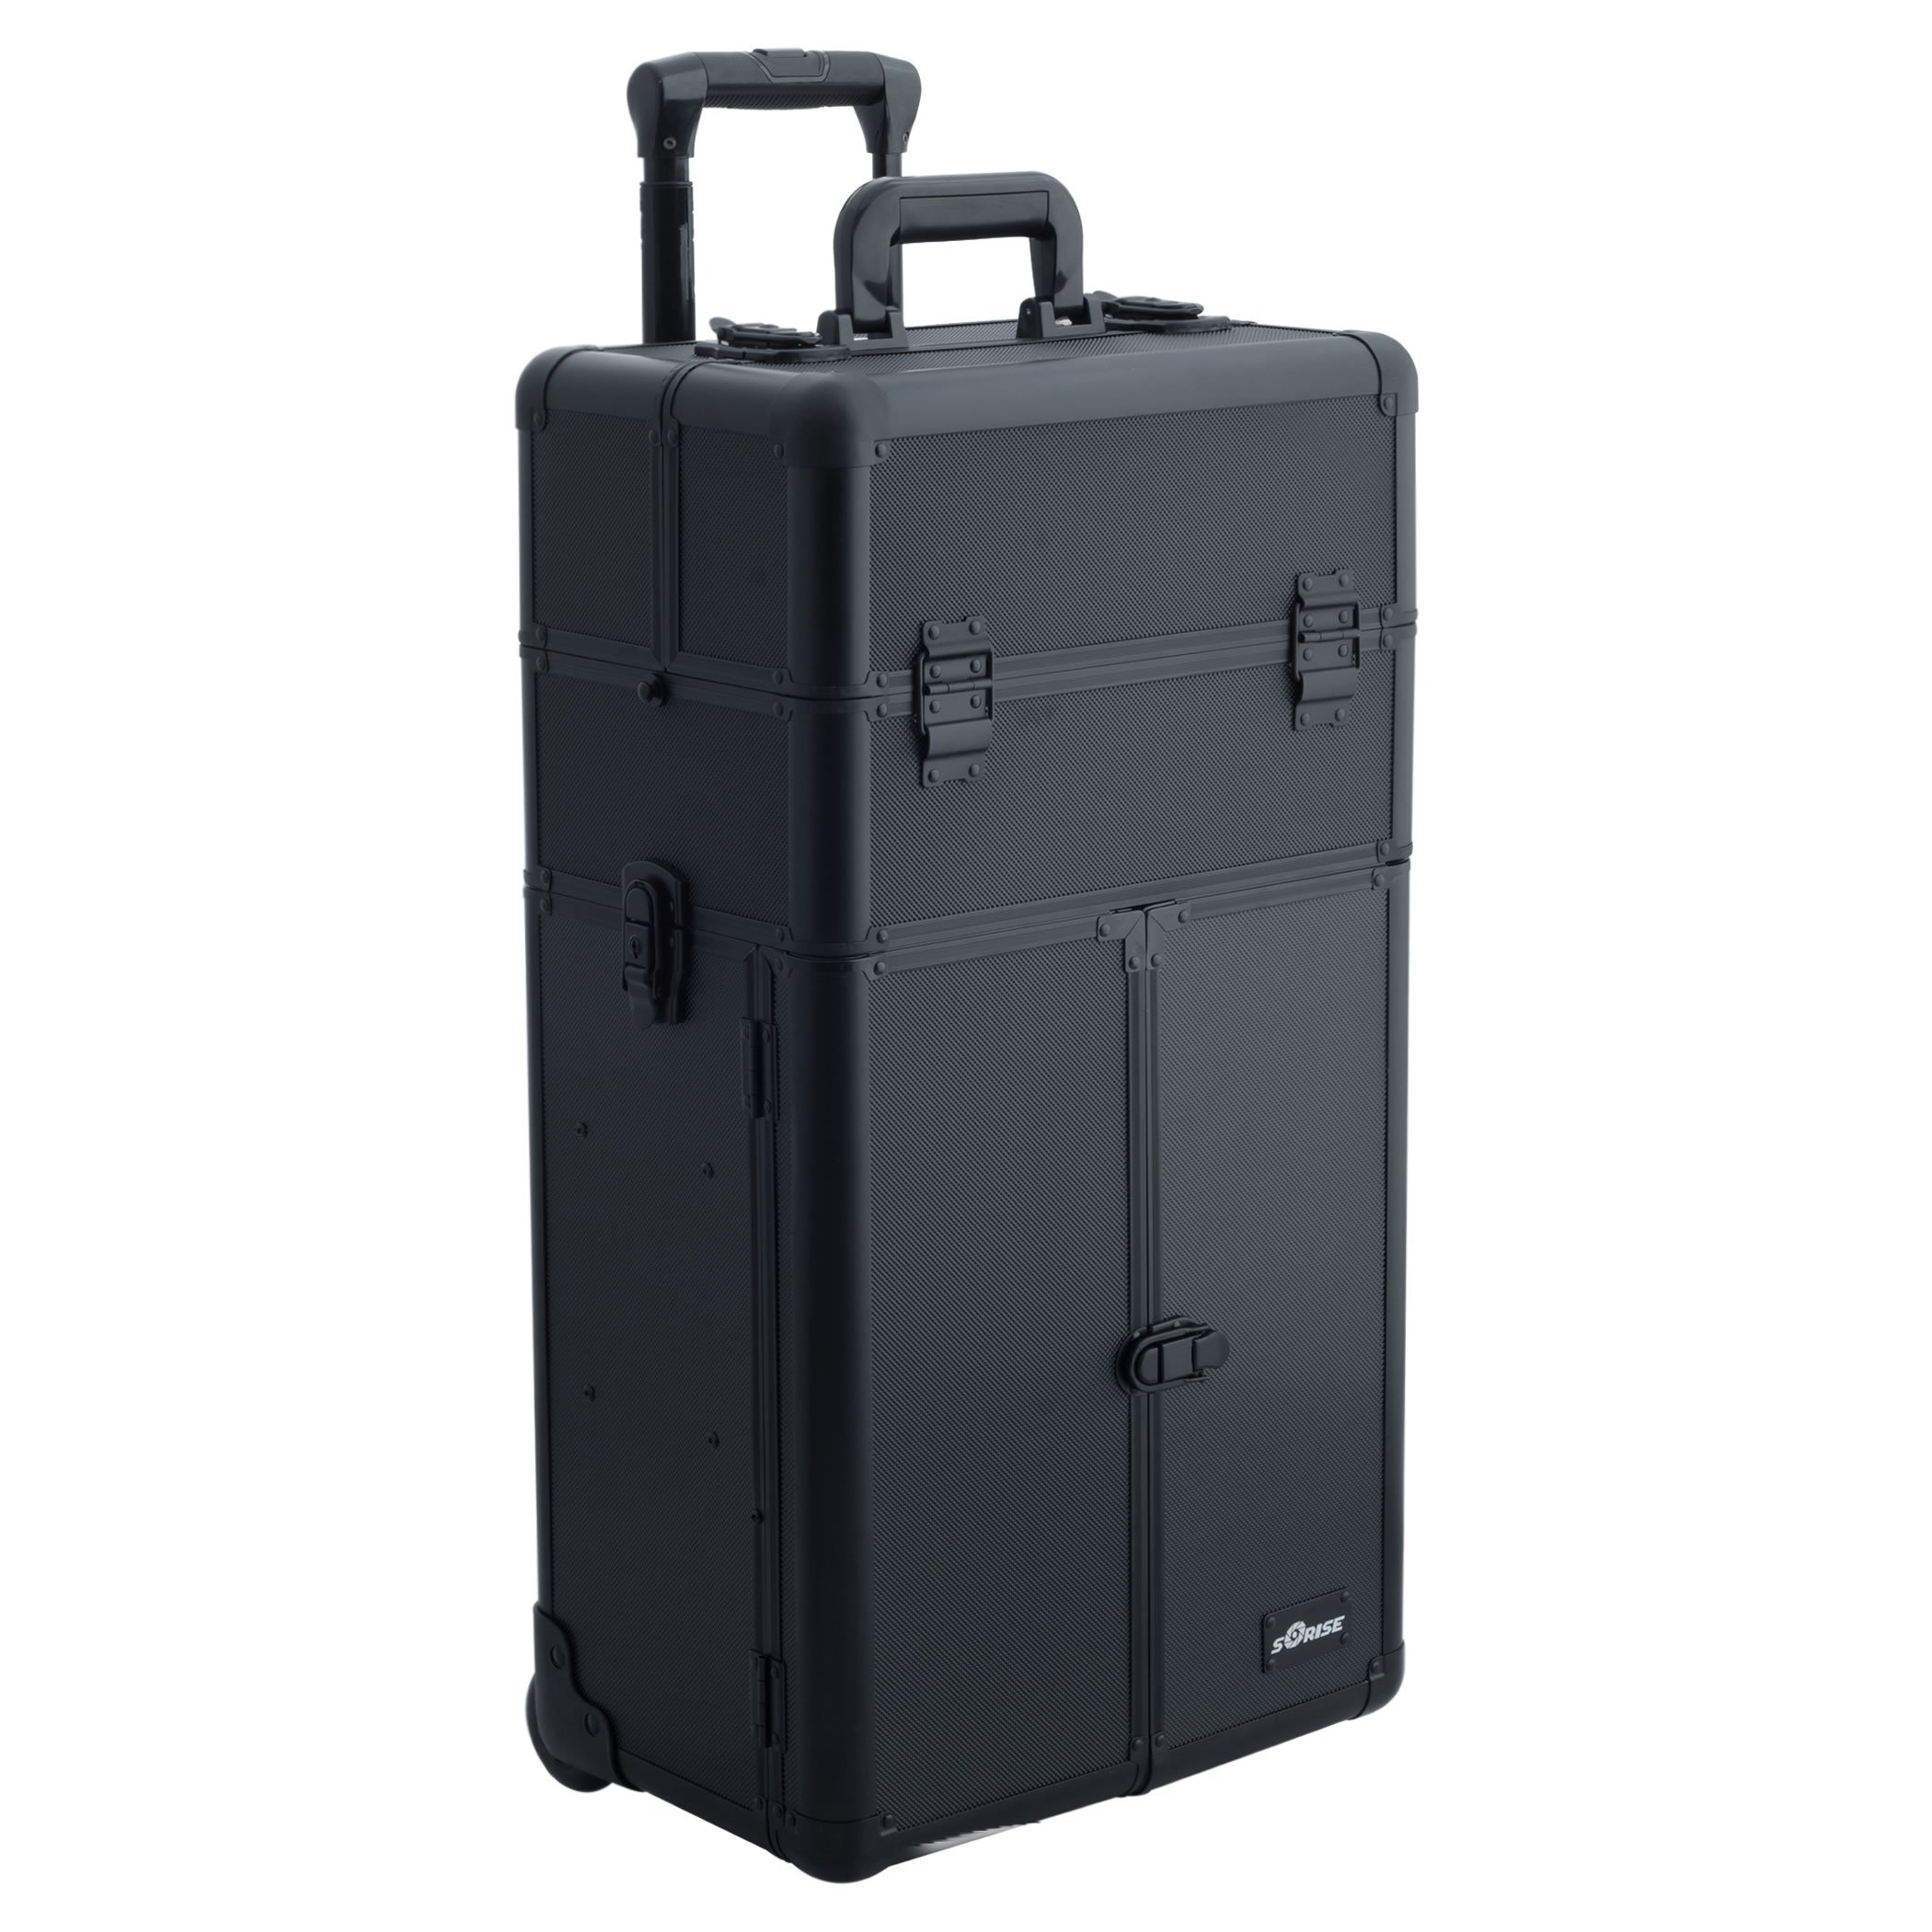 SUNRISE Makeup Rolling Case 2 in 1 Professional Artist I3565, French Doors, 3 Trays and 4 Drawers, Locking with Mirror and Shoulder Strap, Black Dot by SunRise